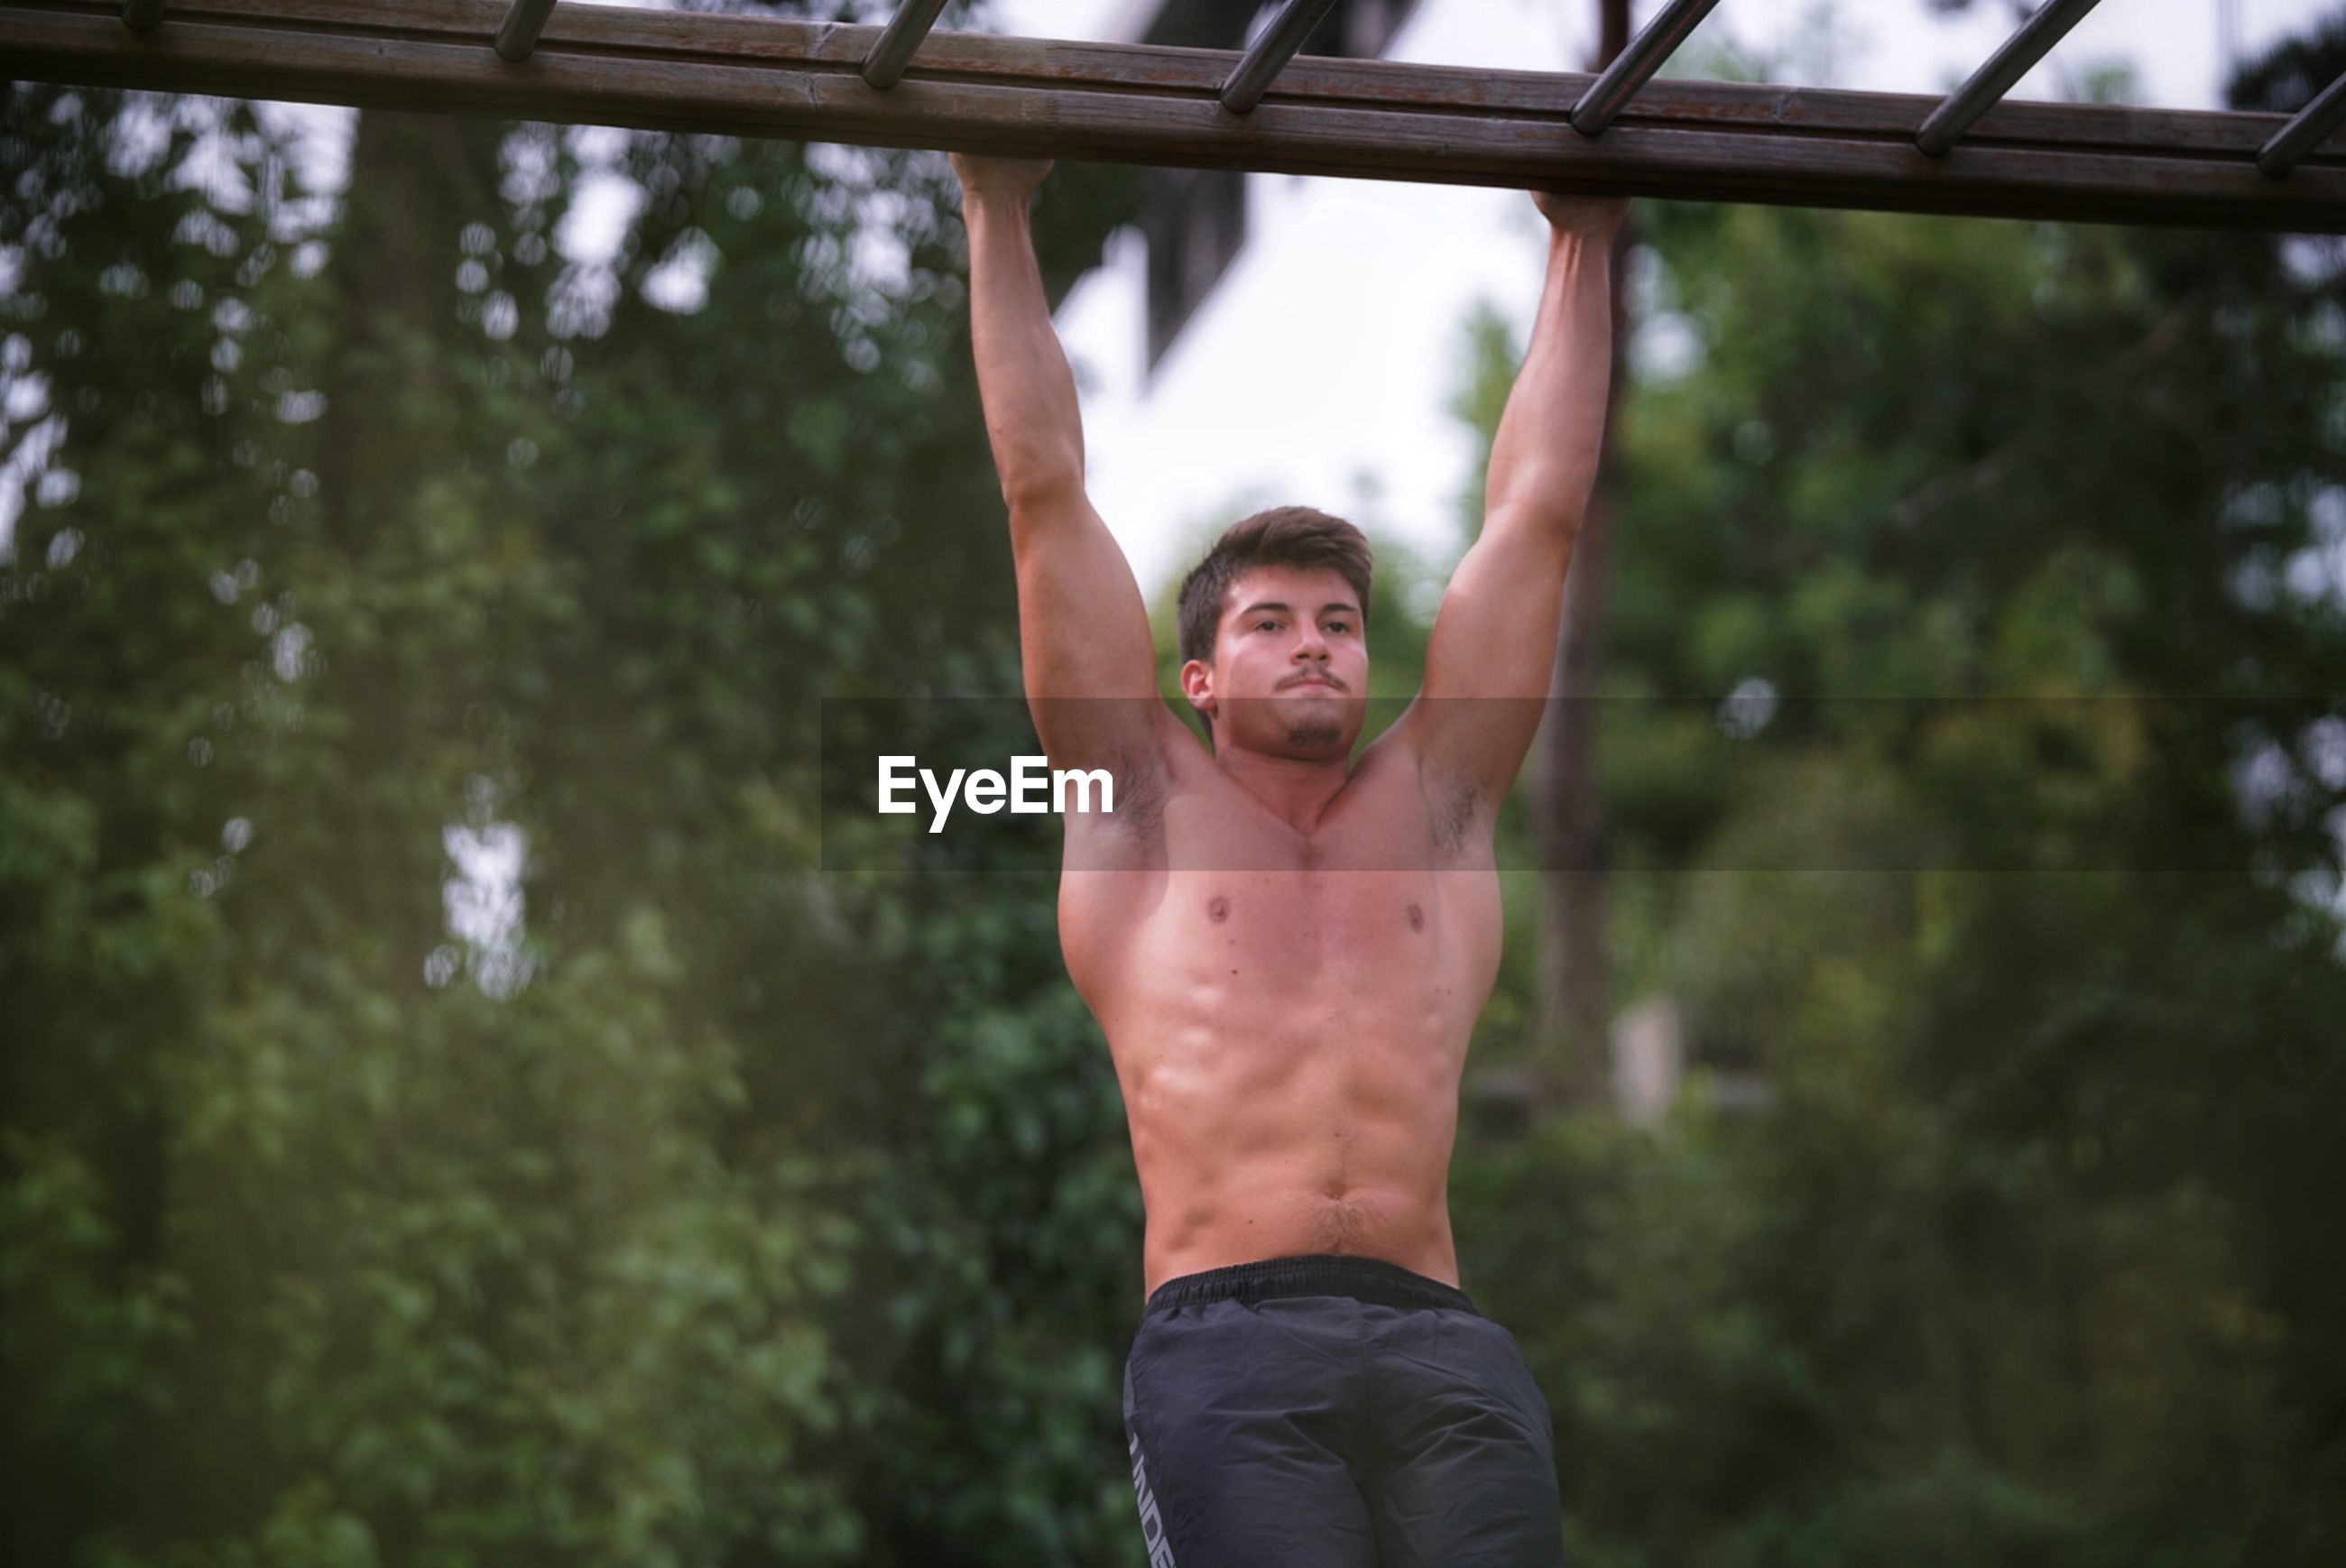 one person, shirtless, lifestyles, muscular build, young men, front view, real people, men, three quarter length, young adult, healthy lifestyle, adult, strength, day, standing, males, leisure activity, handsome, human arm, arms raised, masculinity, abdominal muscle